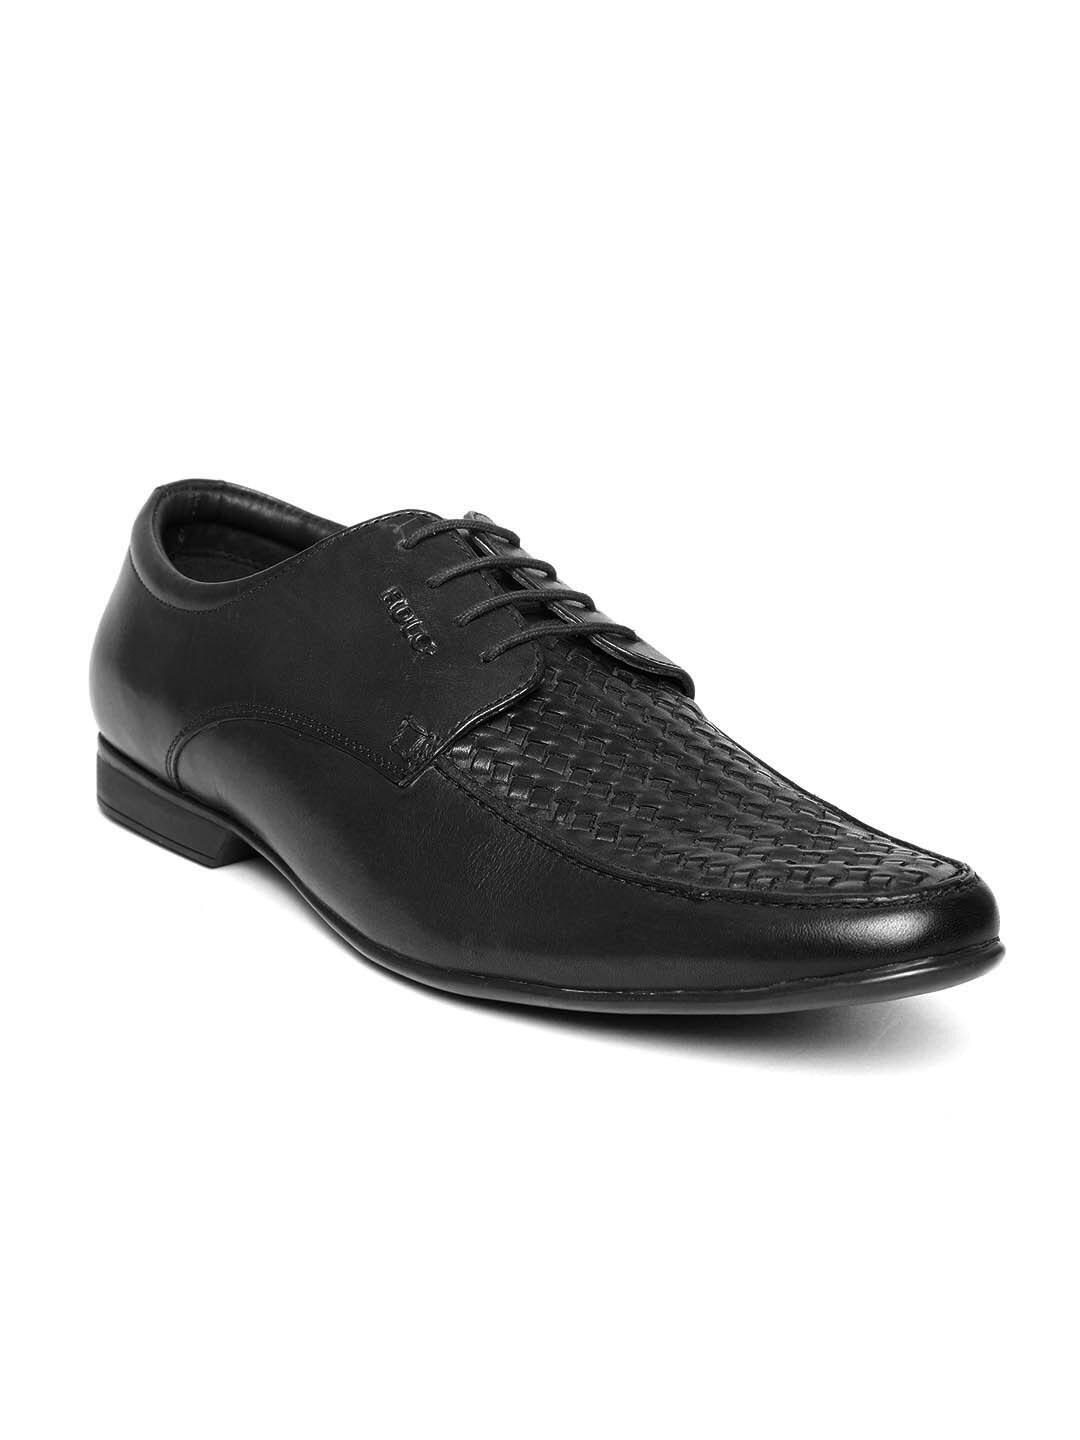 f46361453ee5 Woven Formal Shoes - Buy Woven Formal Shoes online in India